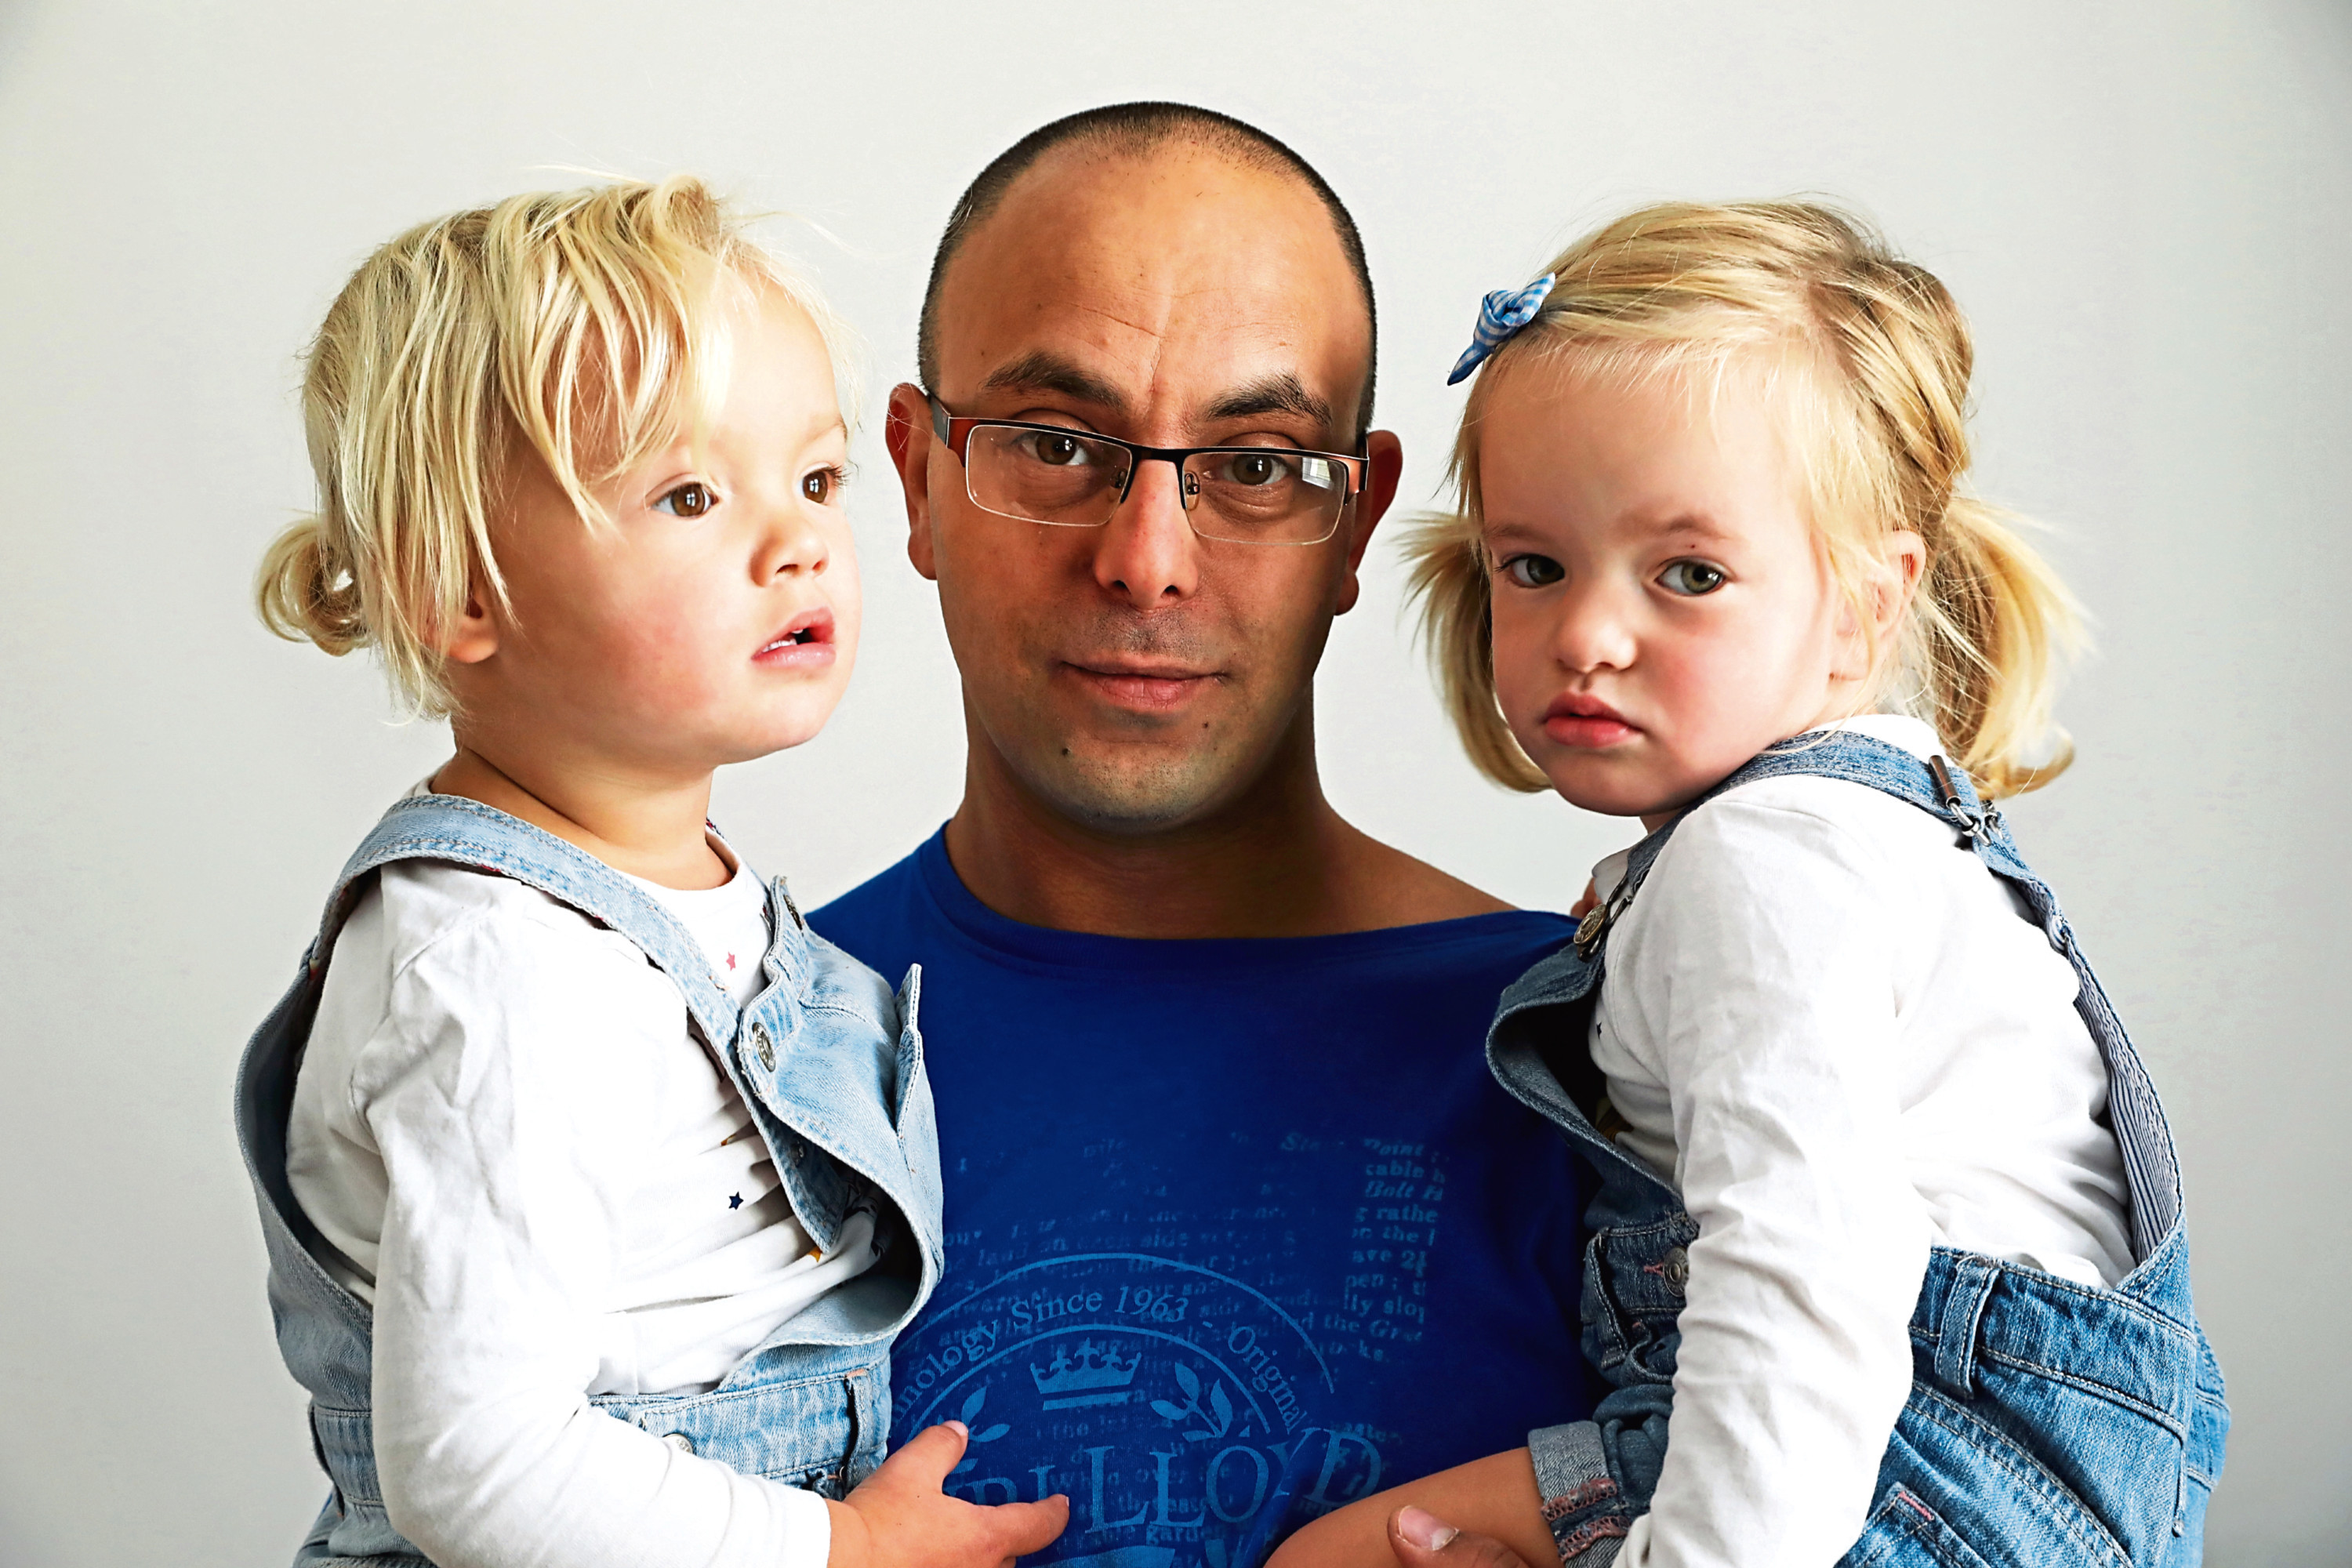 Tarig Brady with twins Erica and Evie